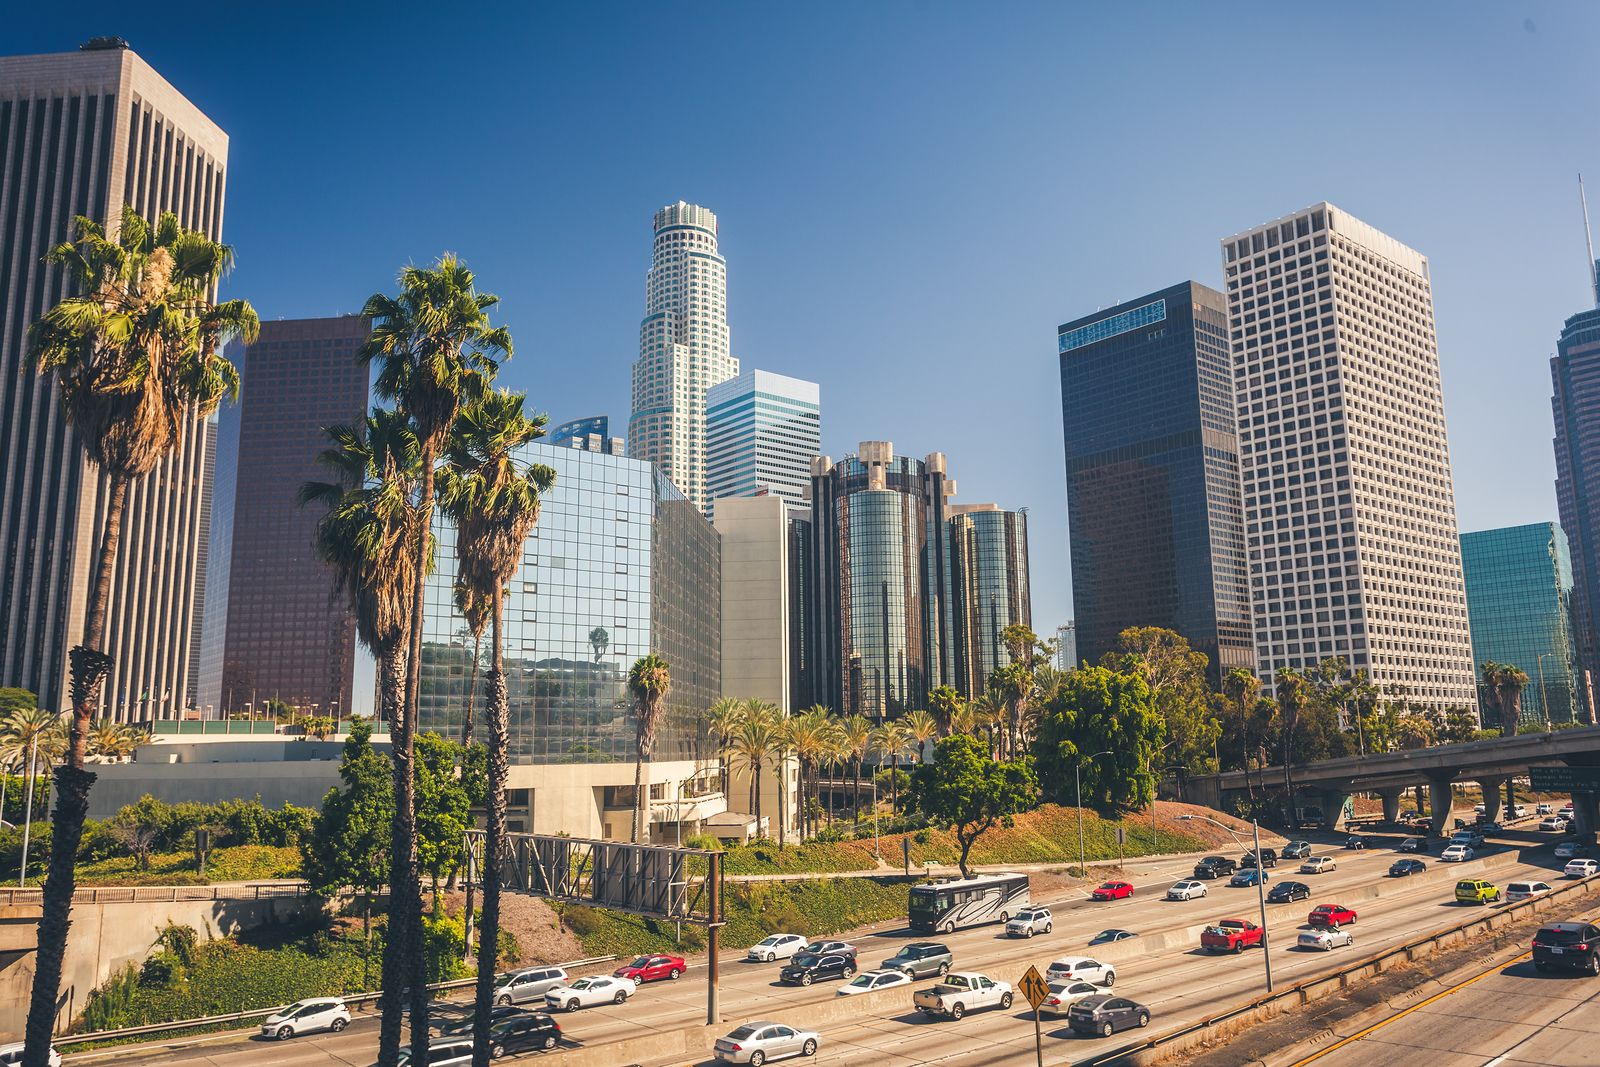 Los Angeles Real Estate Market Report 2019